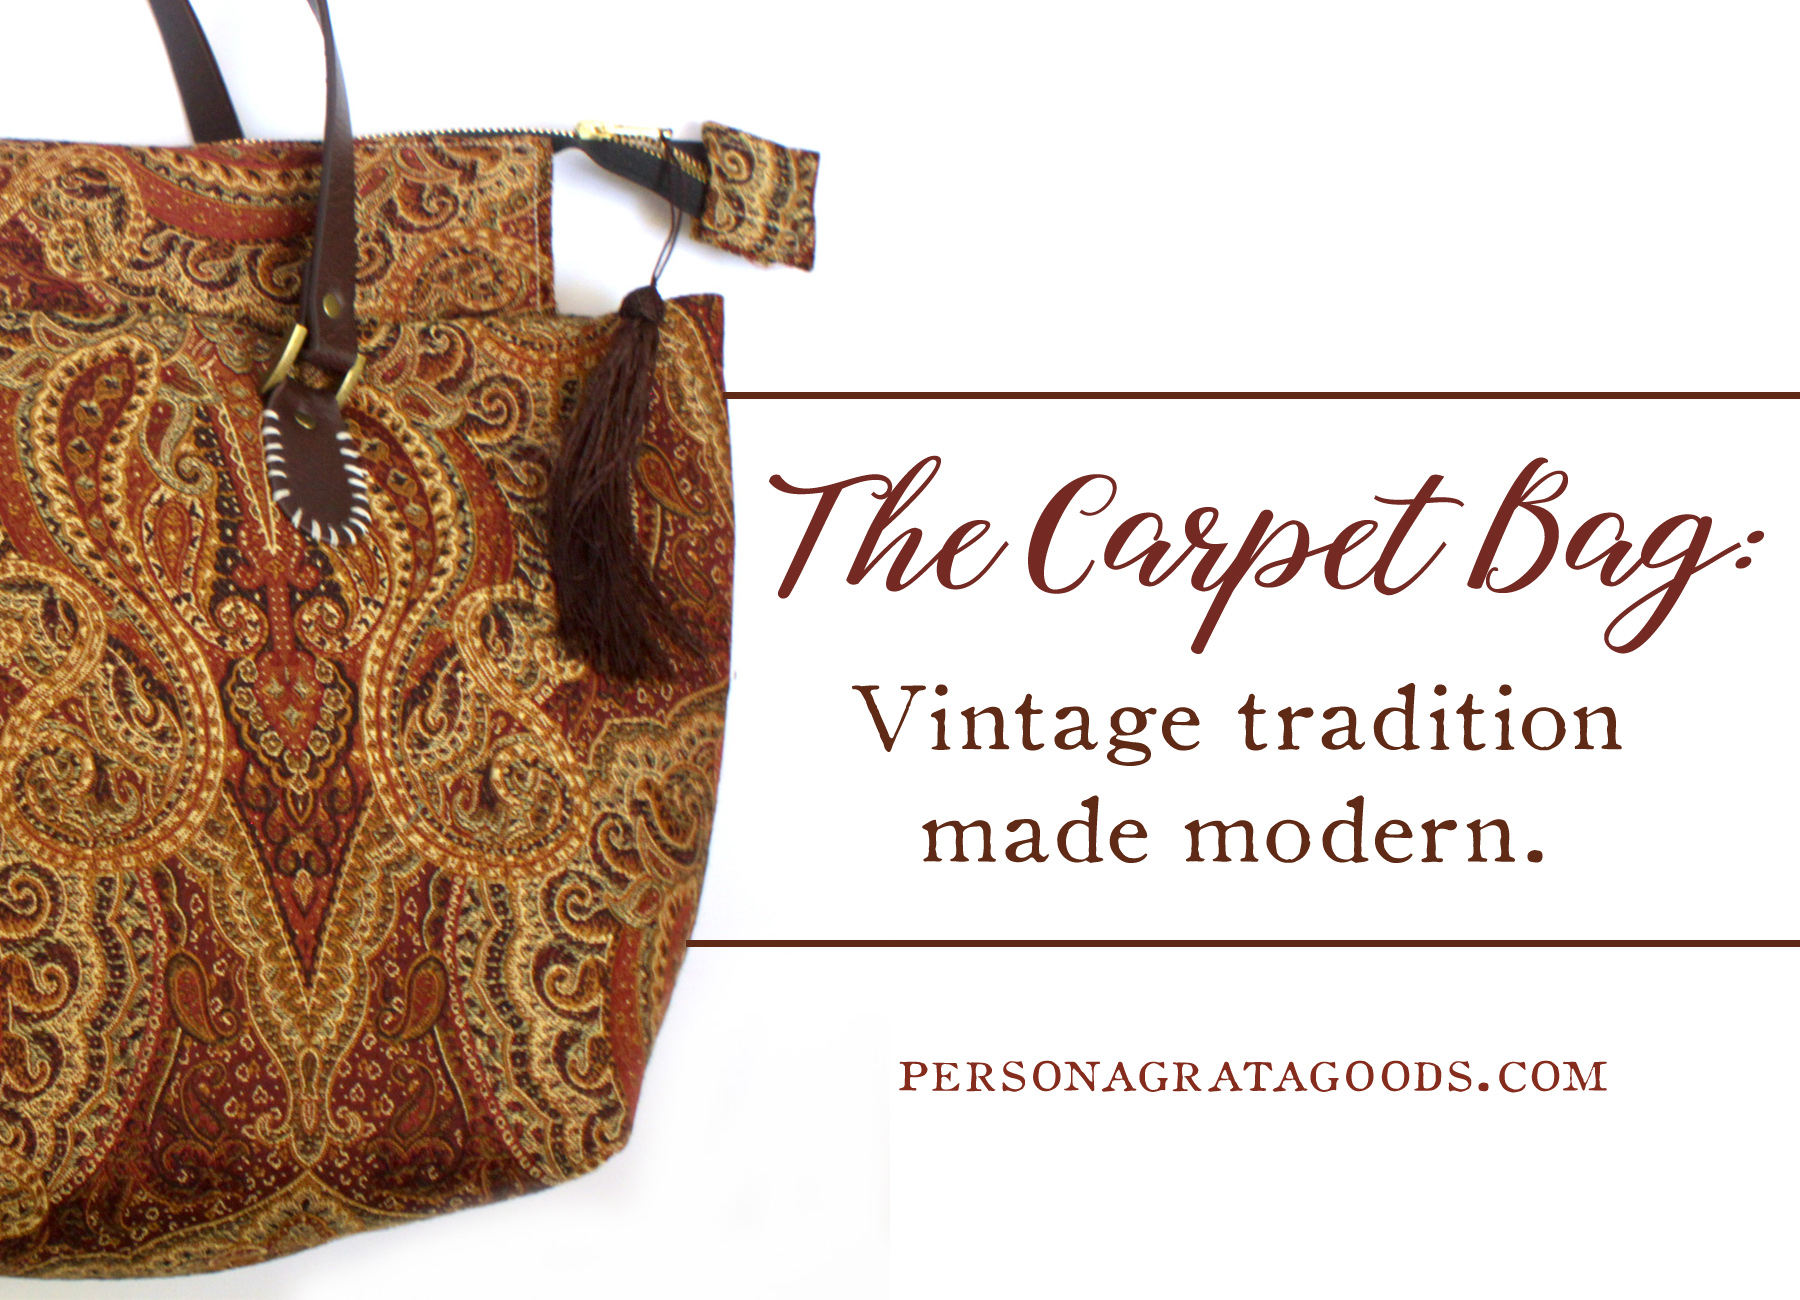 Carpet Tapestry Bags – From Downton Abbey to Now